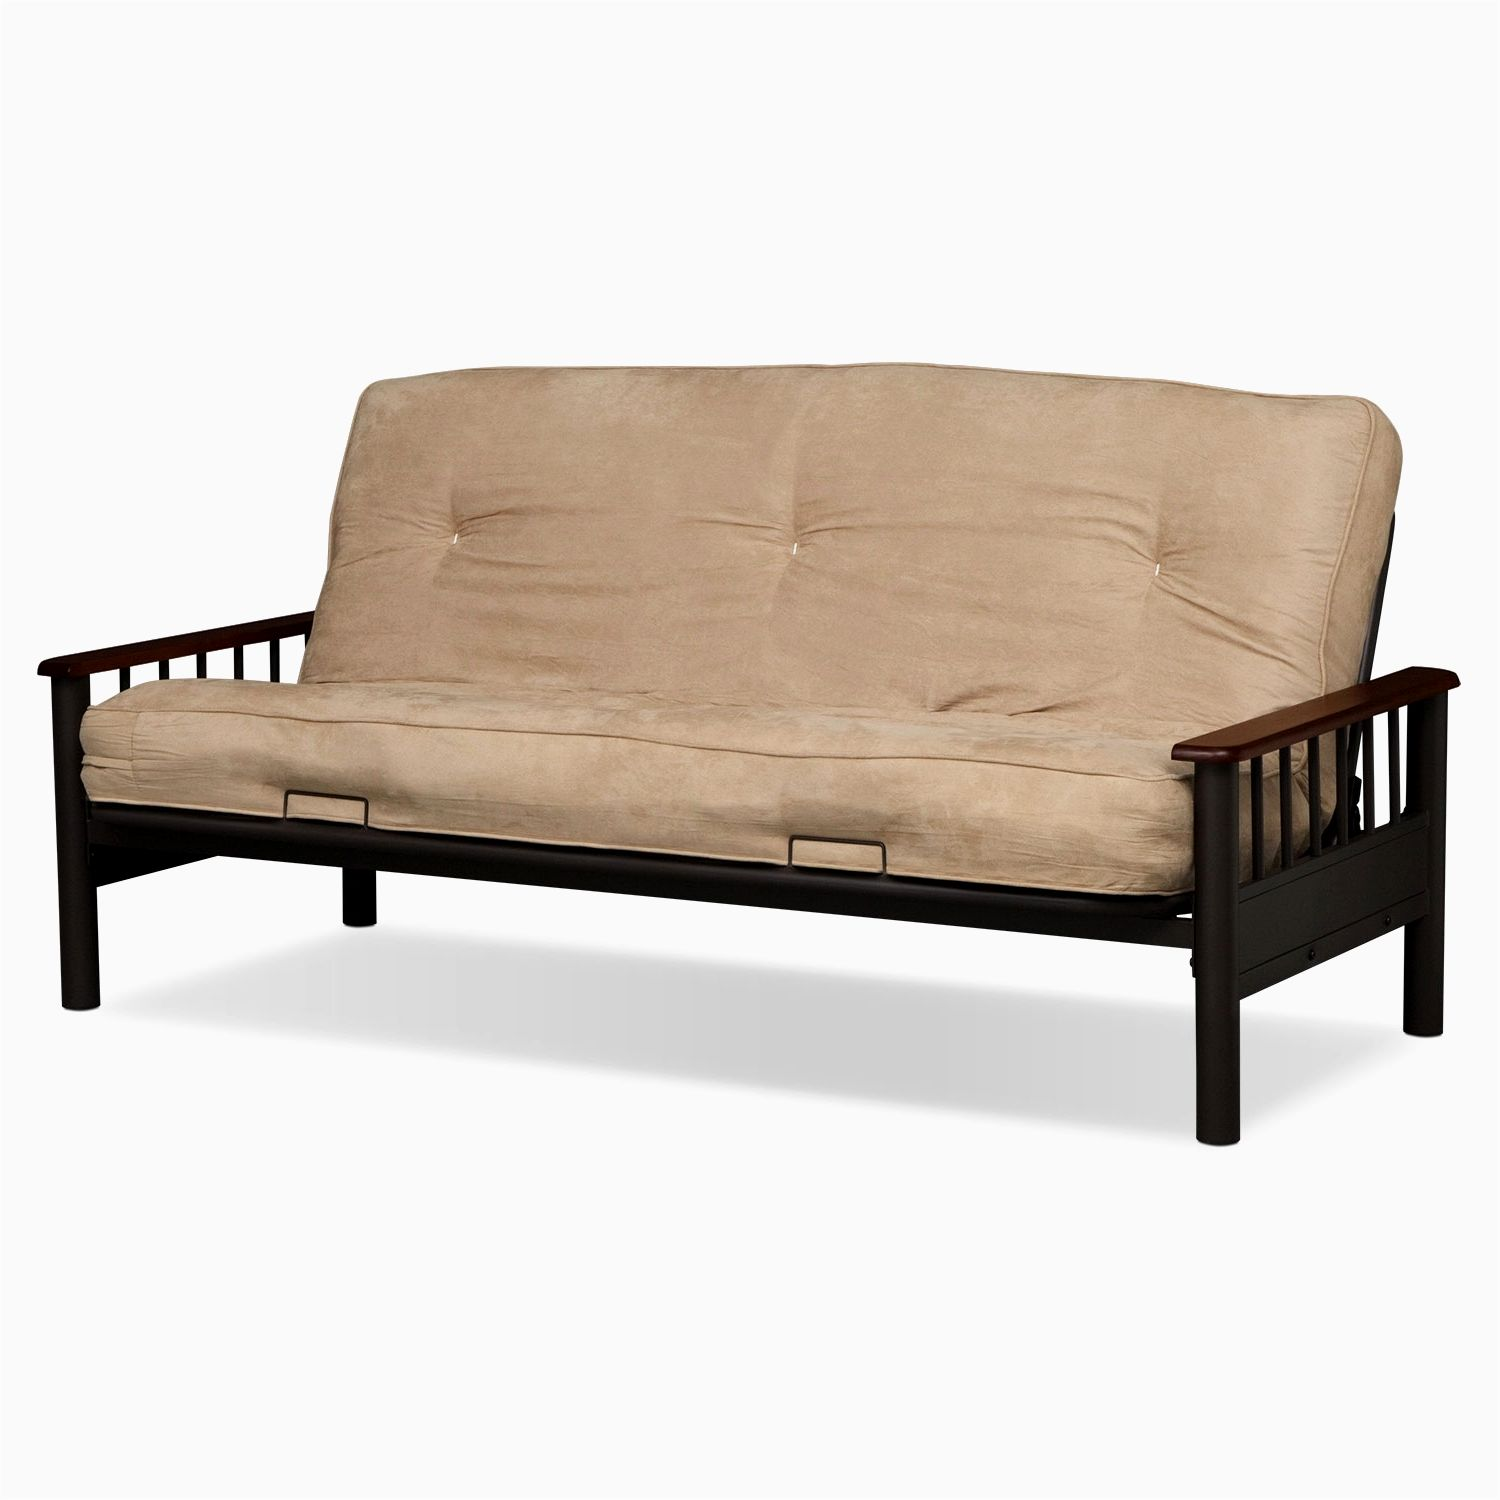 lovely used sofa bed for sale collection-Amazing Used sofa Bed for Sale Photo